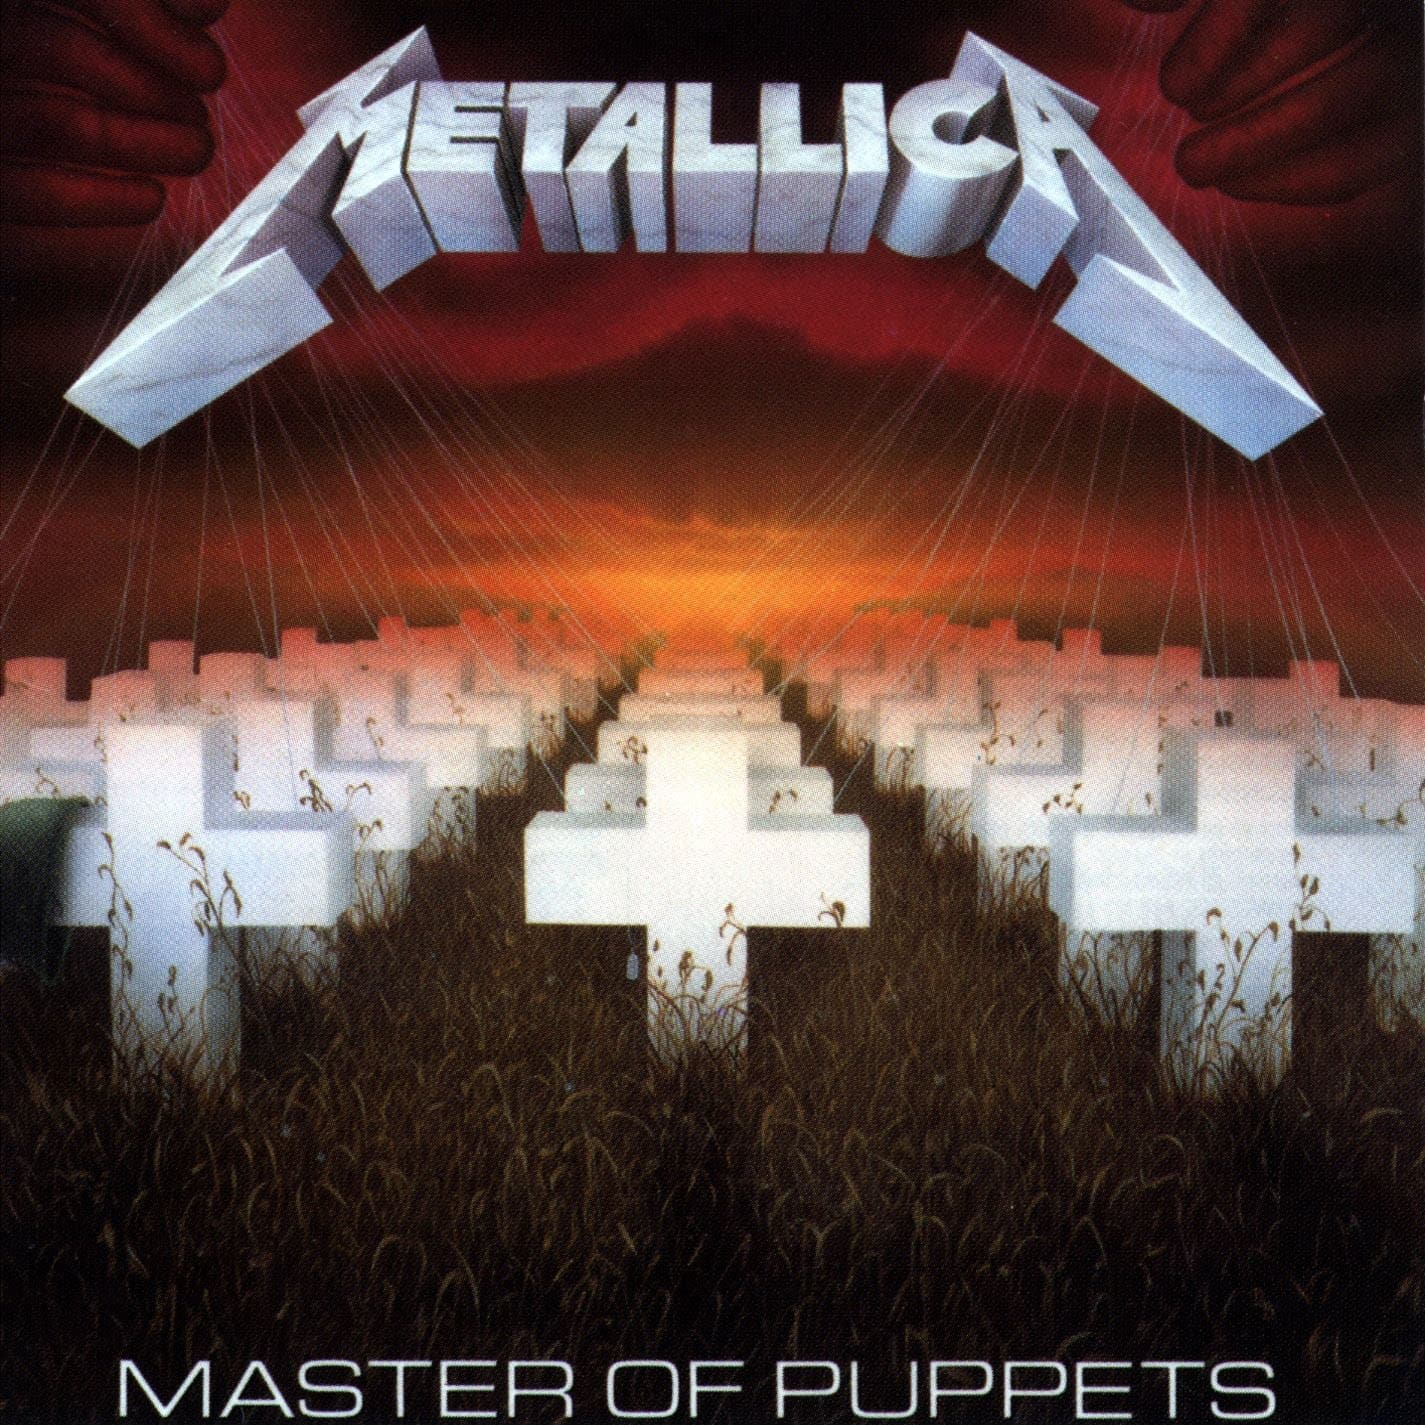 Metallica CD's (Black Album, Master of Puppets, Load, ...And Justice for All, Reload, Ride The Lightning, Beyond Magnetic) $3.99 each at Best Buy